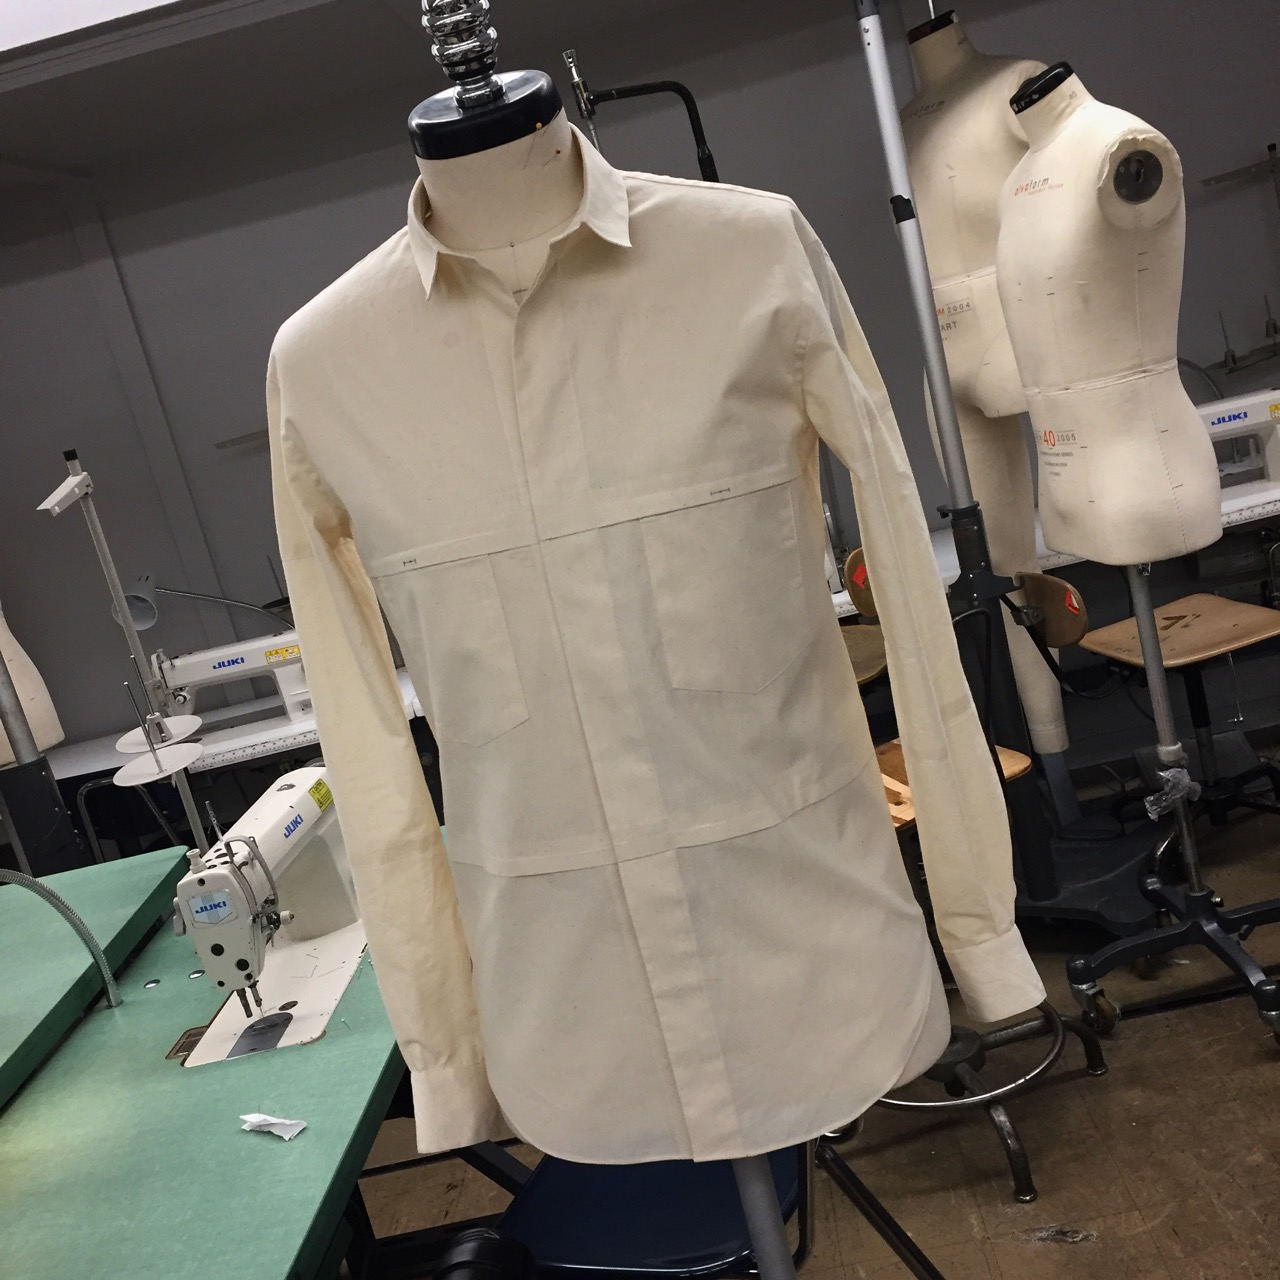 ee0eec13 Here's the shirt I designed last week for my menswear patternmaking class  at Fashion Institute of Technology (FIT). I drafted it from scratch to fit a  men's ...